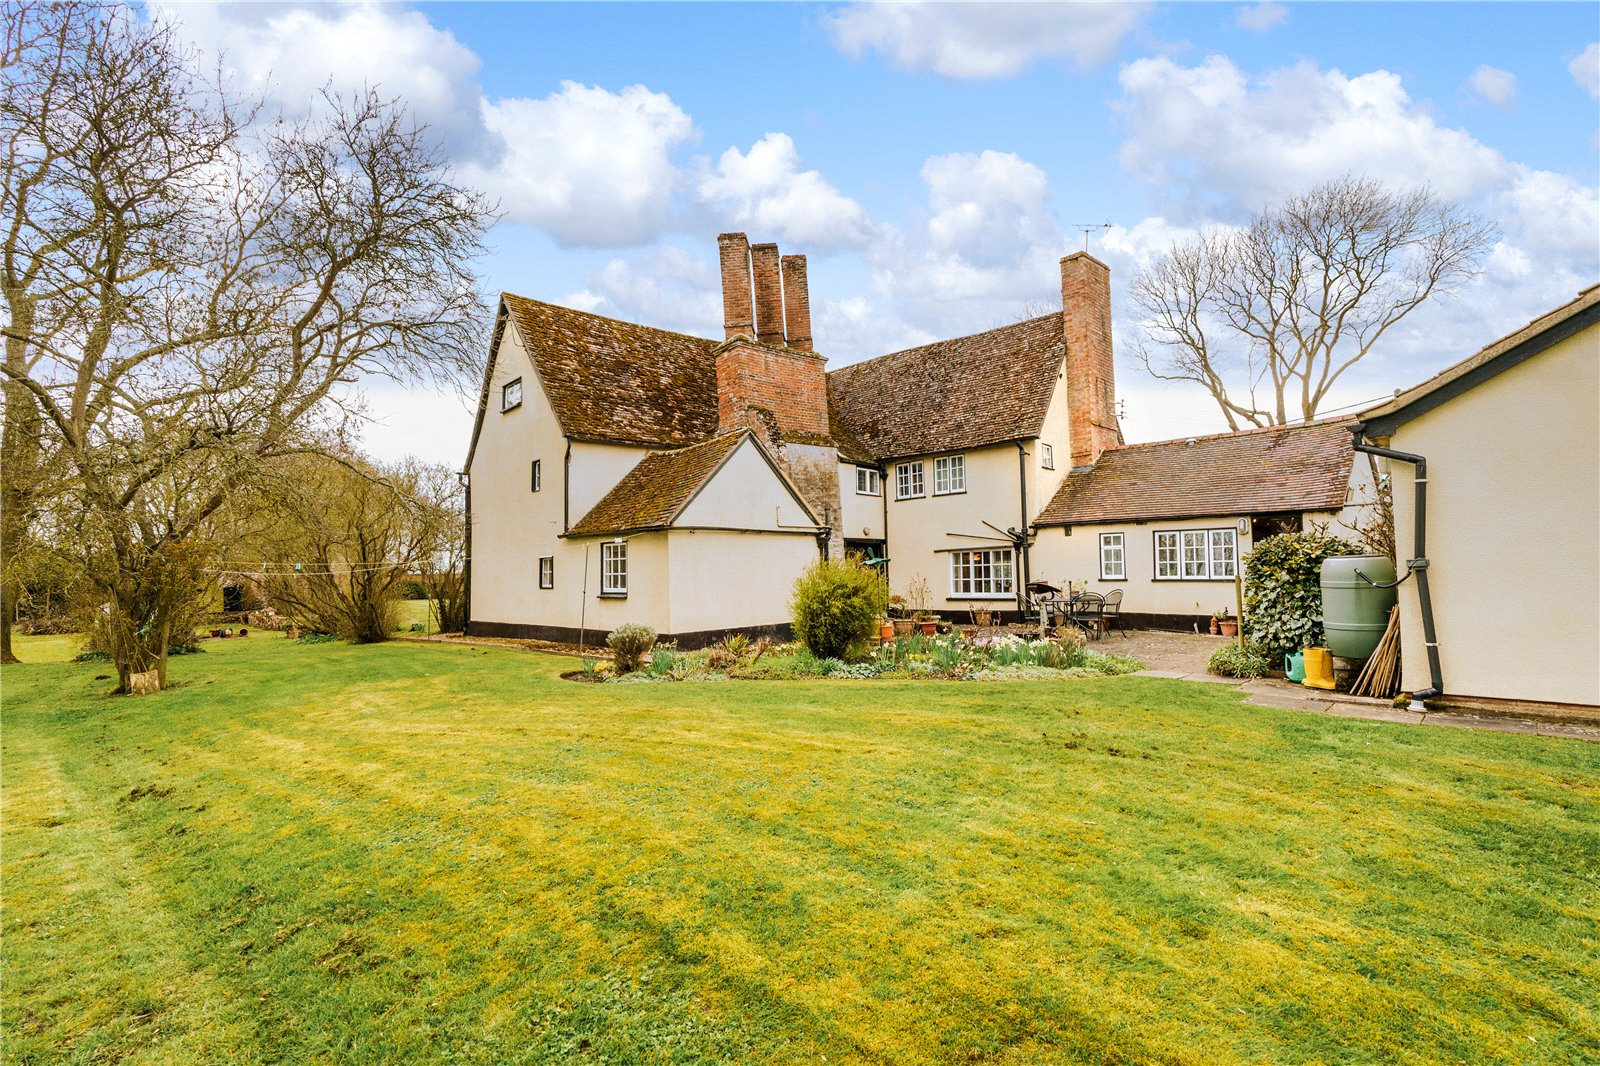 4 bed house for sale in Green End, Pertenhall - Property Image 1